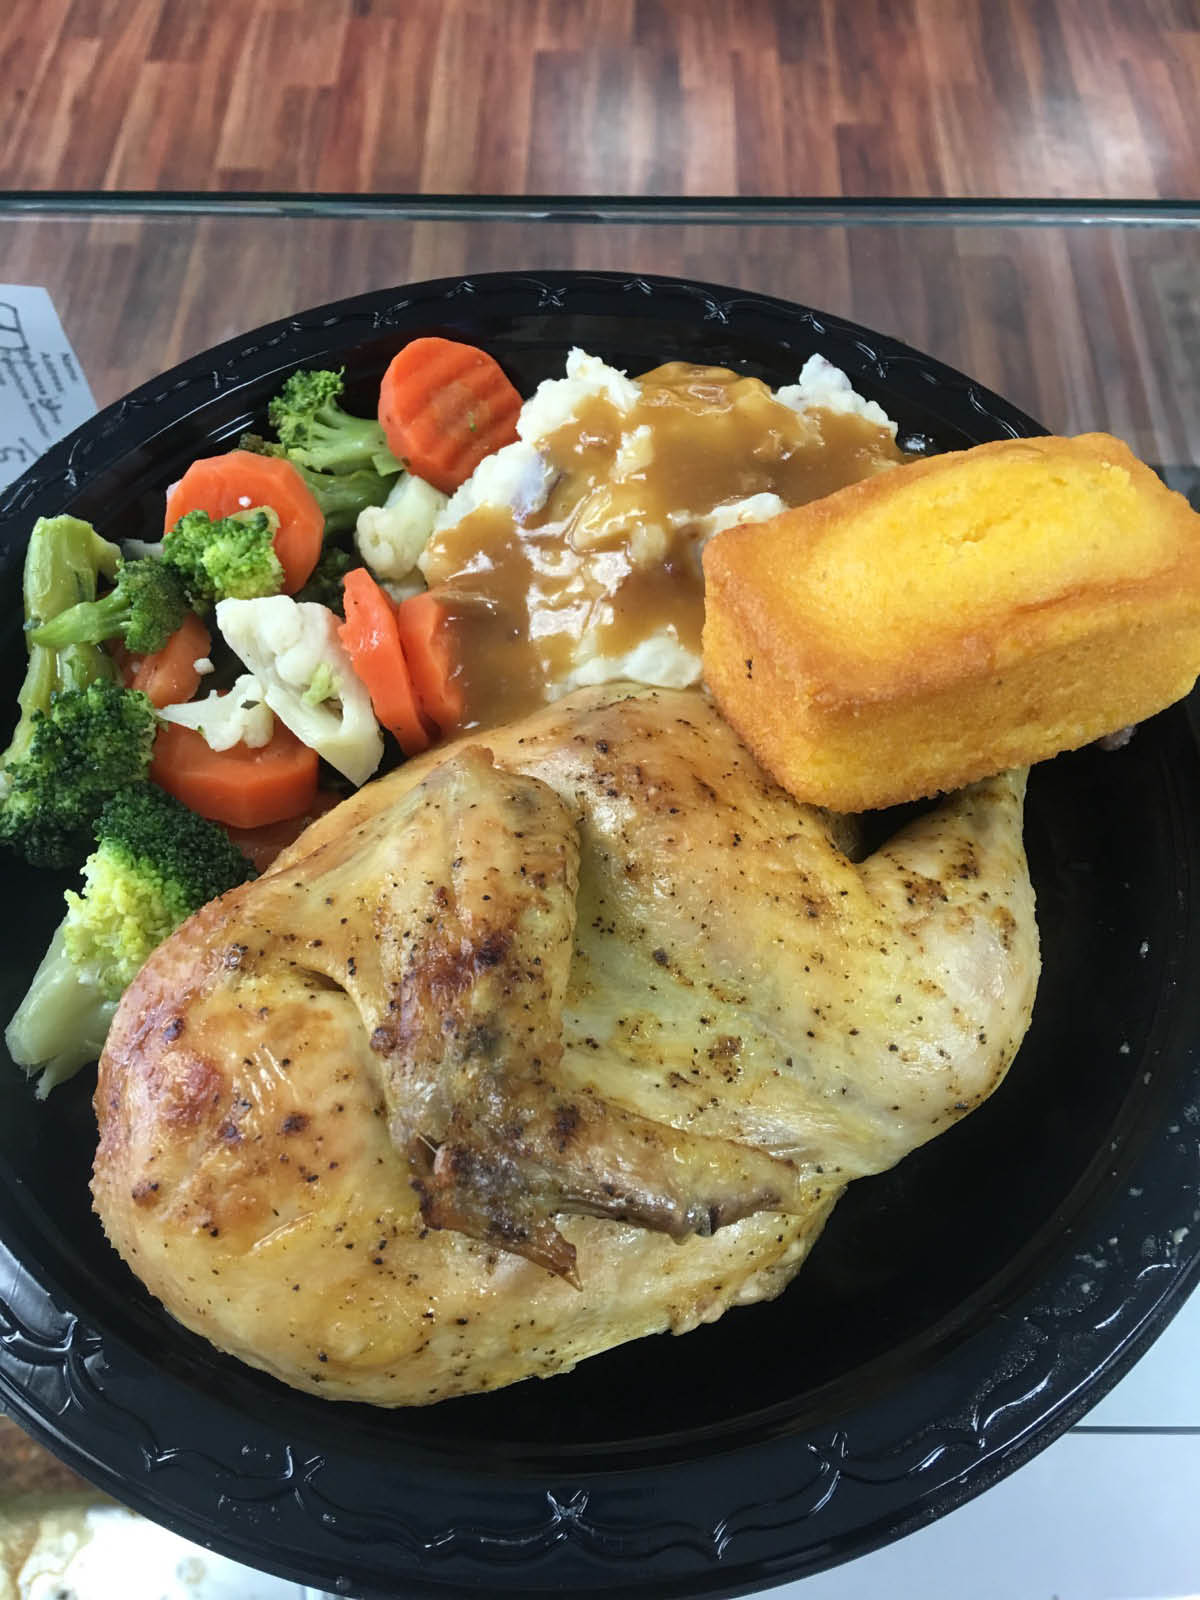 Homestyle meals at Avocados Always Fresh. Whether it's chicken, steak tips, turkey breast, barbecue ribs or meatloaf they all come with your choice of sides.